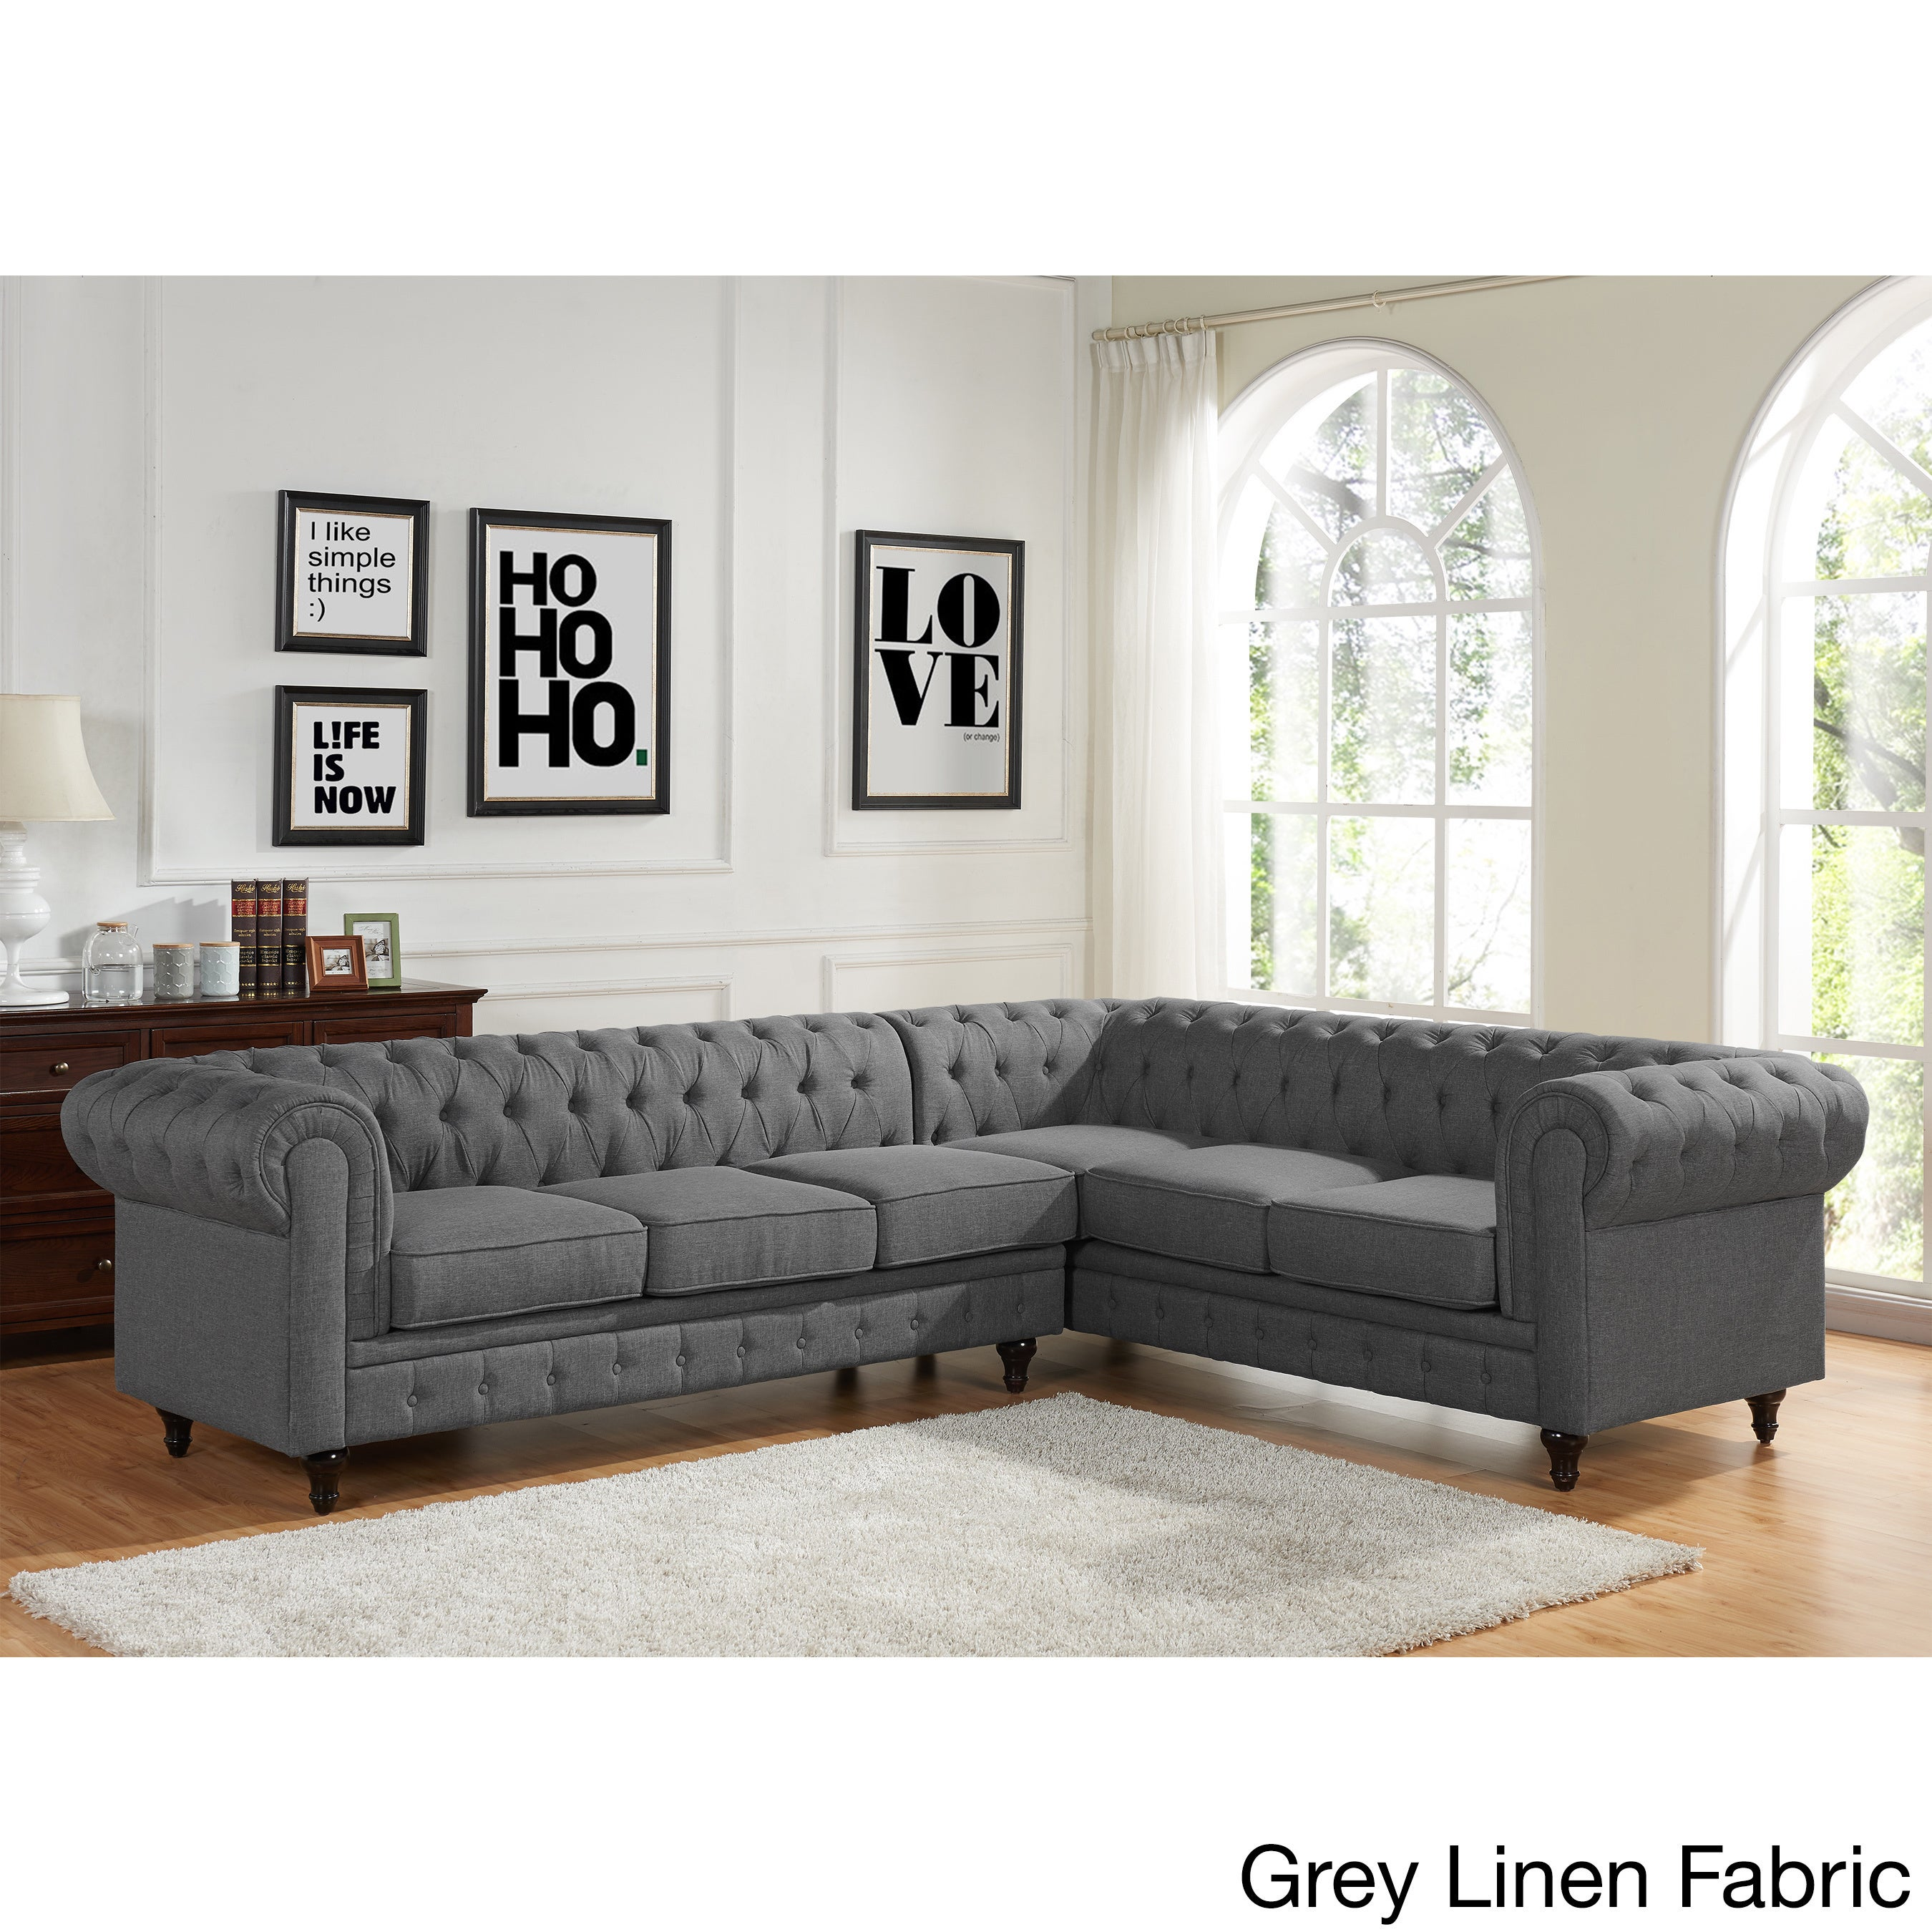 Sophia Modern Style Tufted Rolled Arm Left Facing Chaise Sectional Sofa